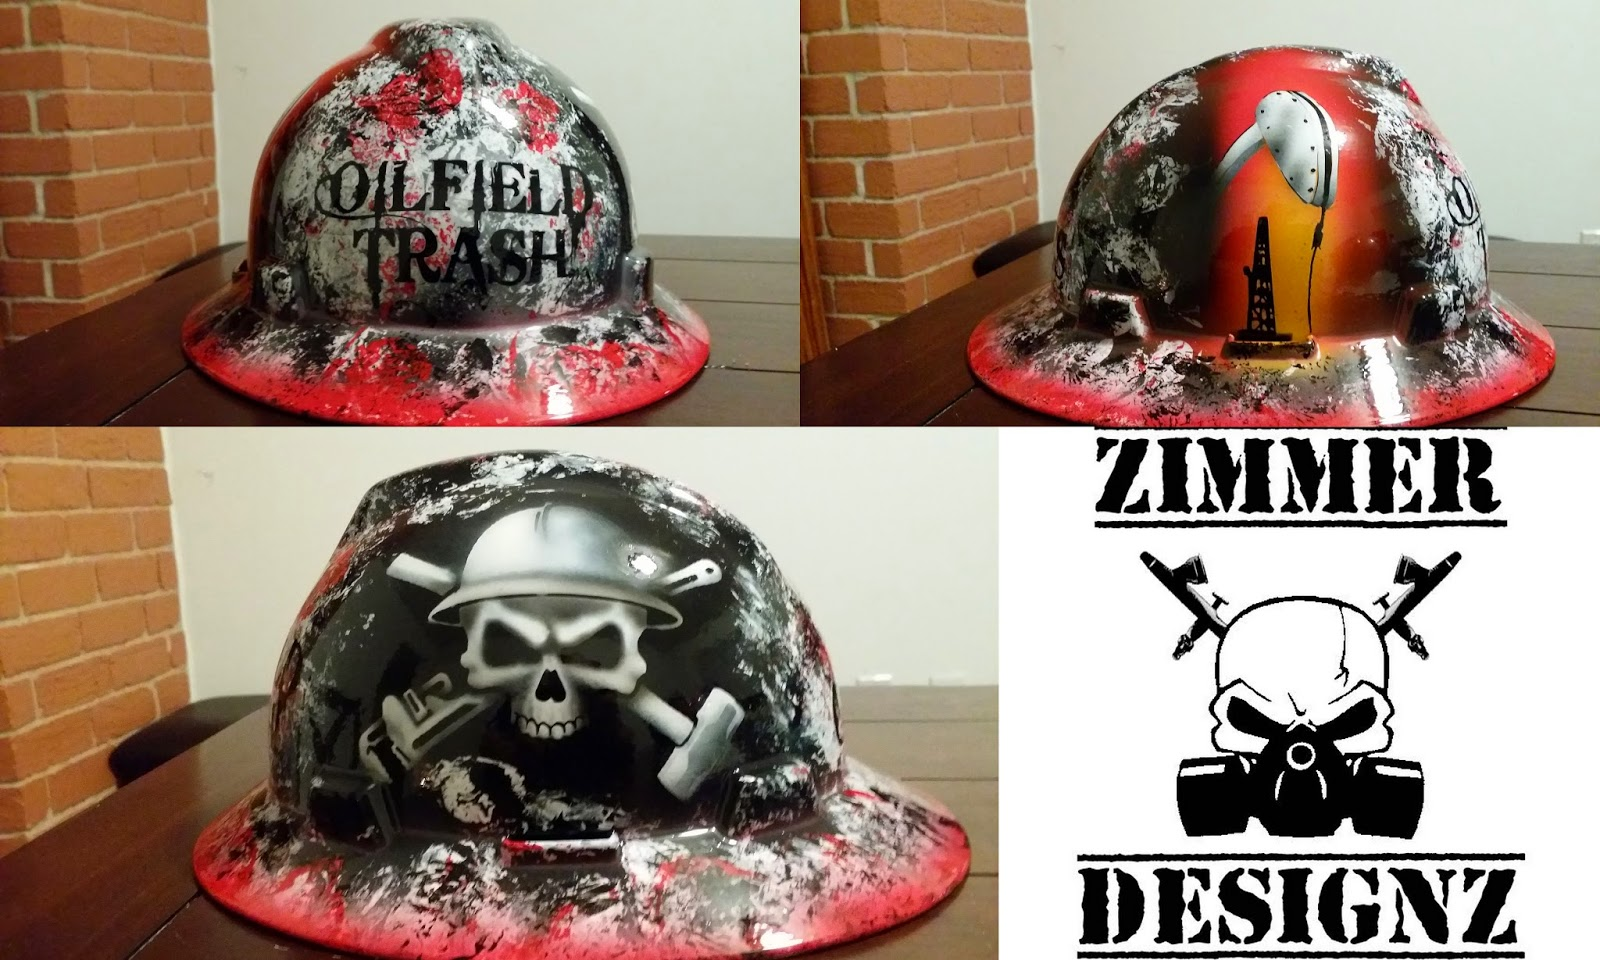 oilfield trash hard hat with skull and crossbones, sledge and crescent wrench